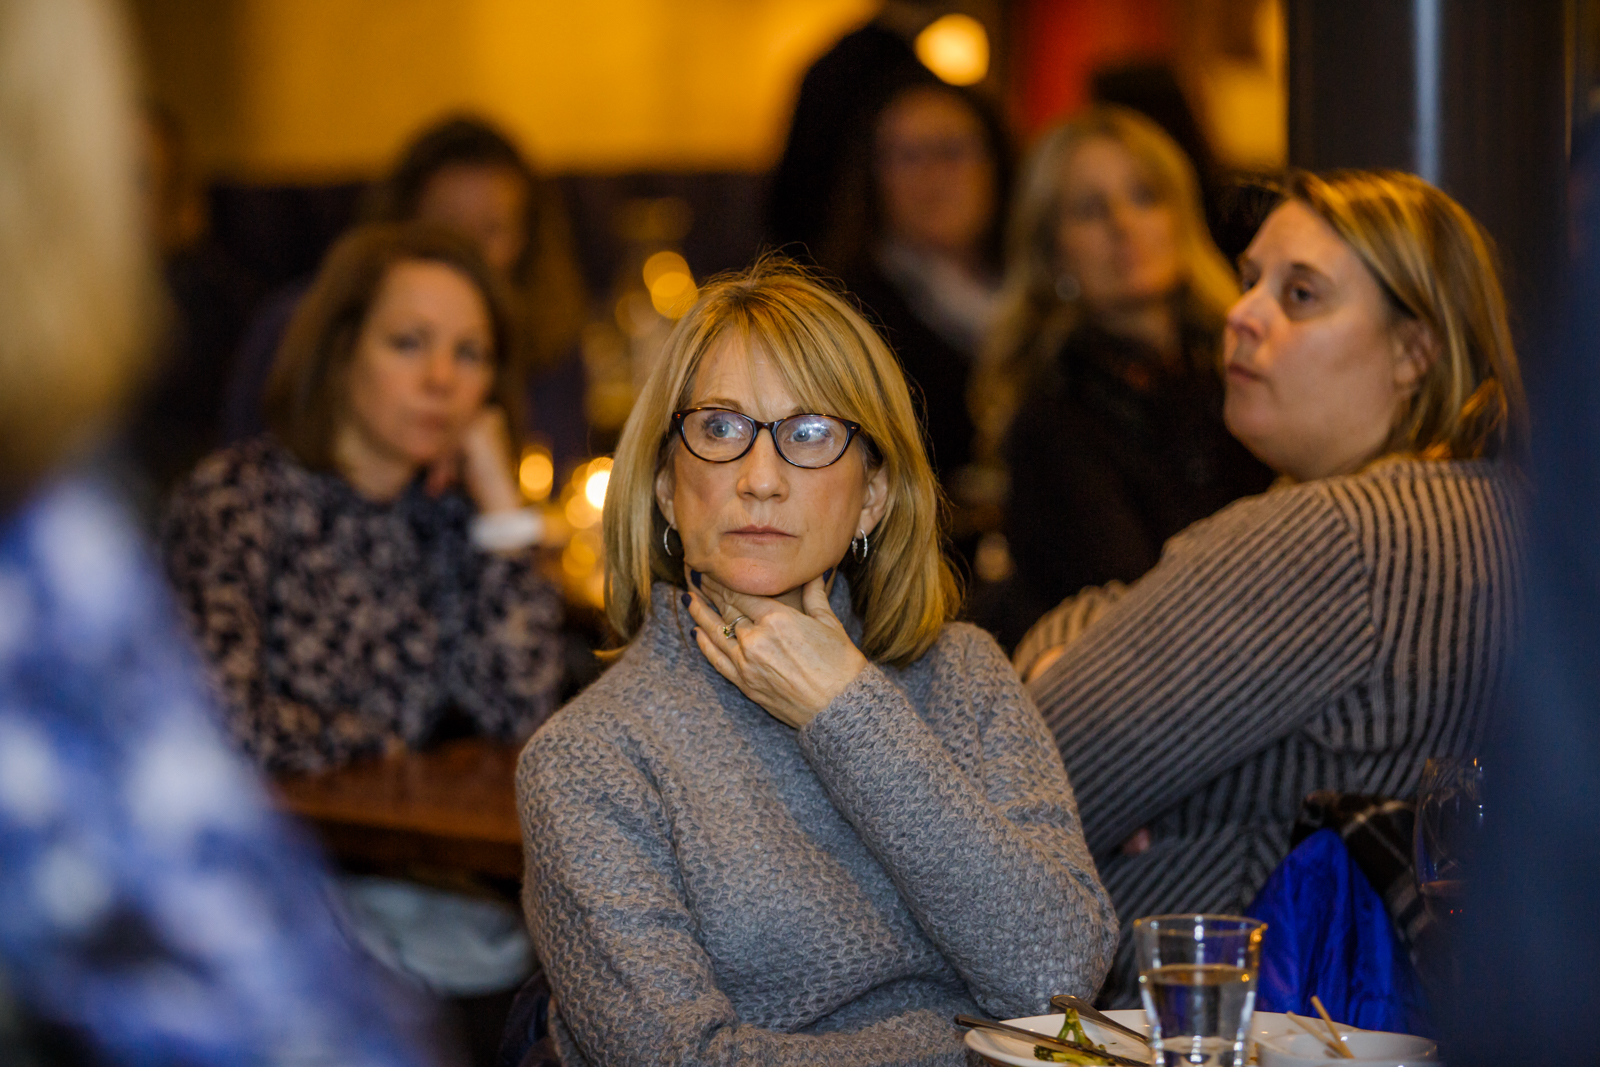 180222-dinner-and-docs-icarus-058.jpg